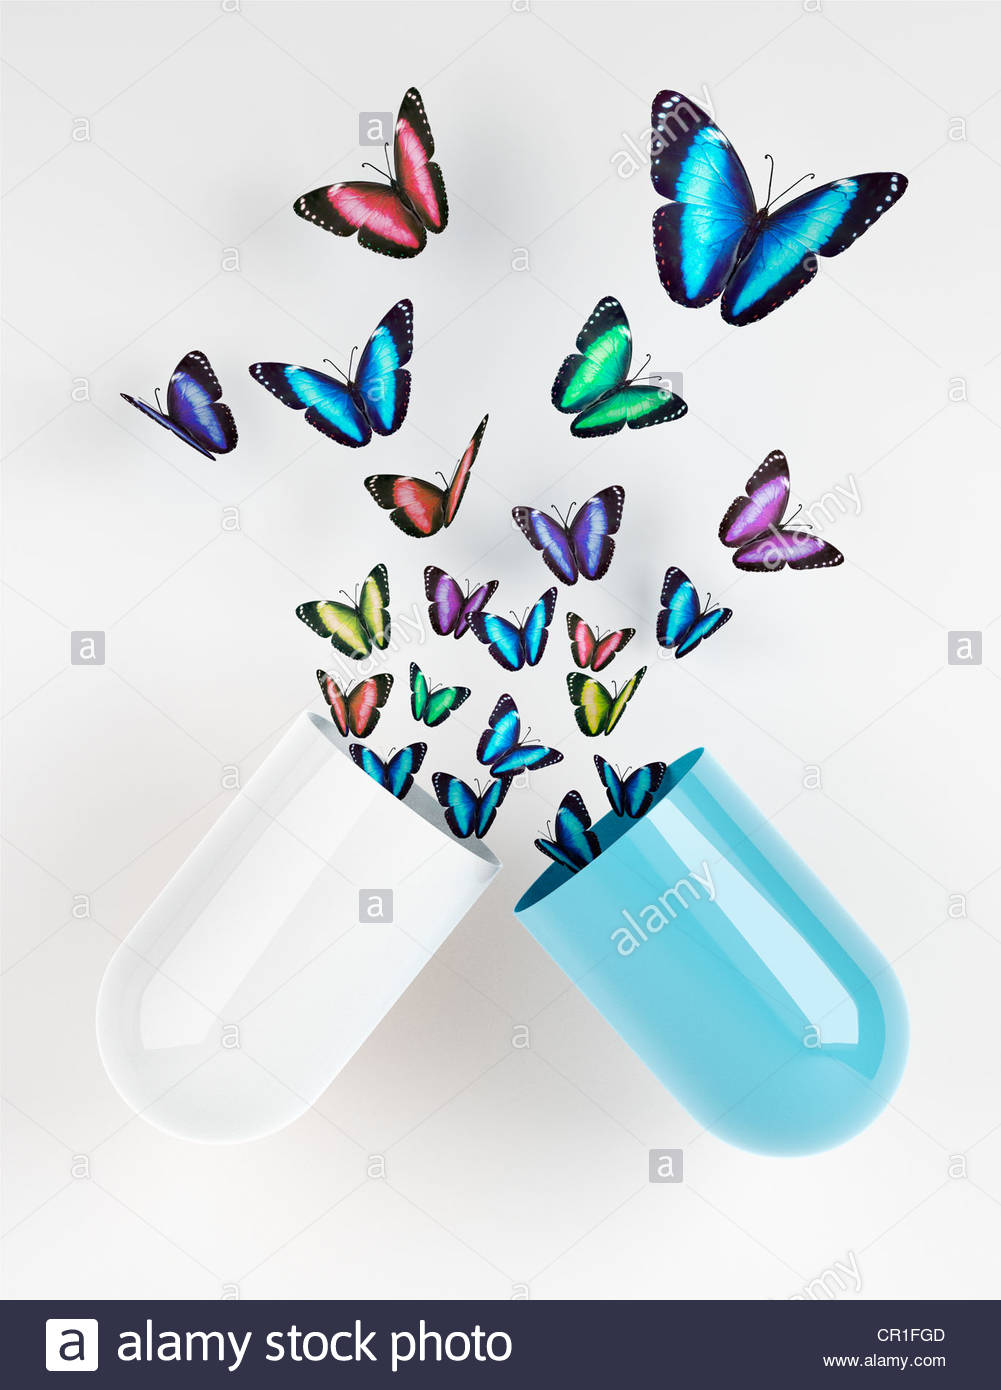 Butterflies emerging from capsule Stock Photo